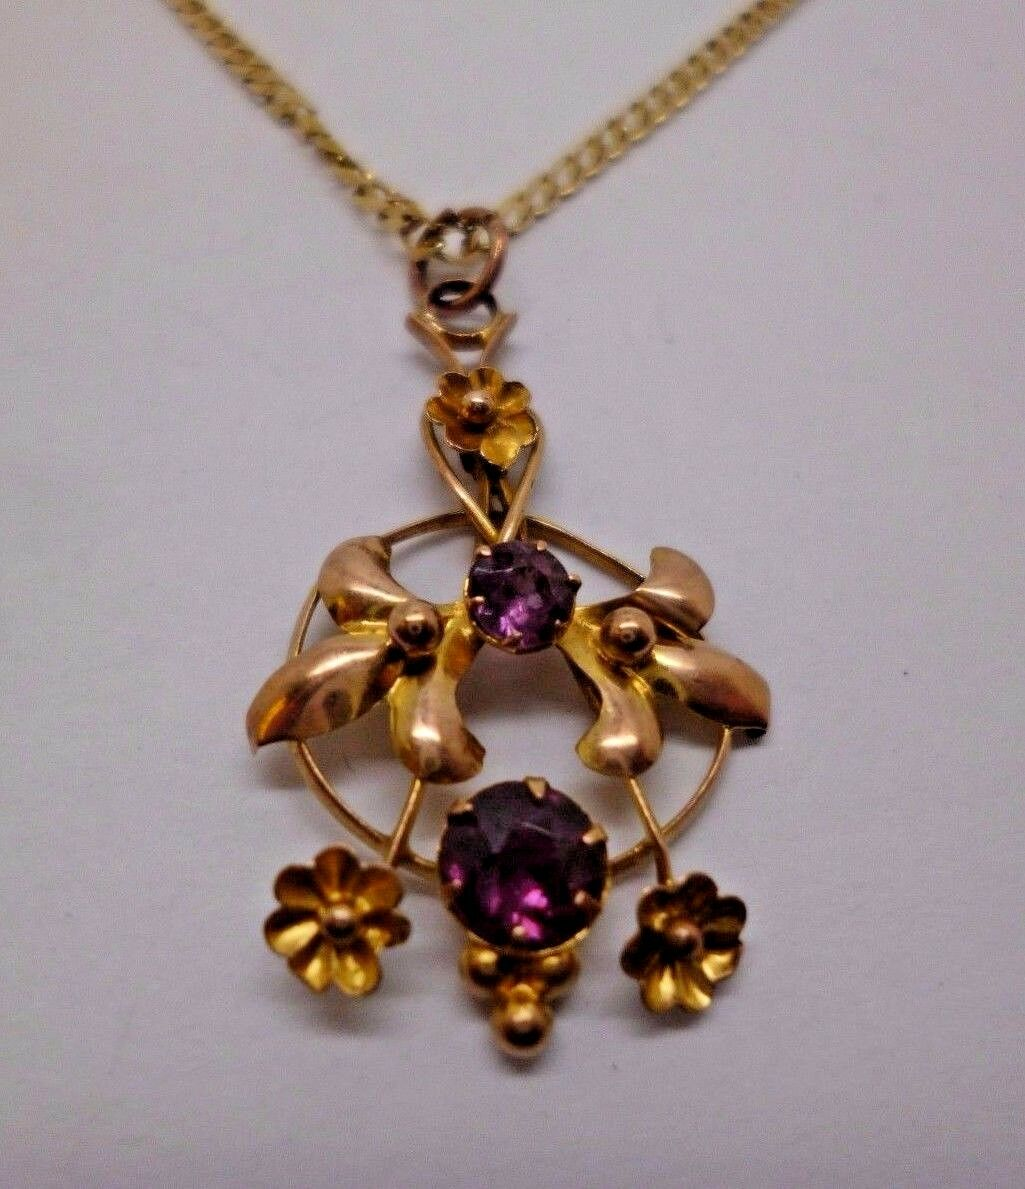 9ct yellow gold amethyst antique pendant with 18' curb chain,  '375'